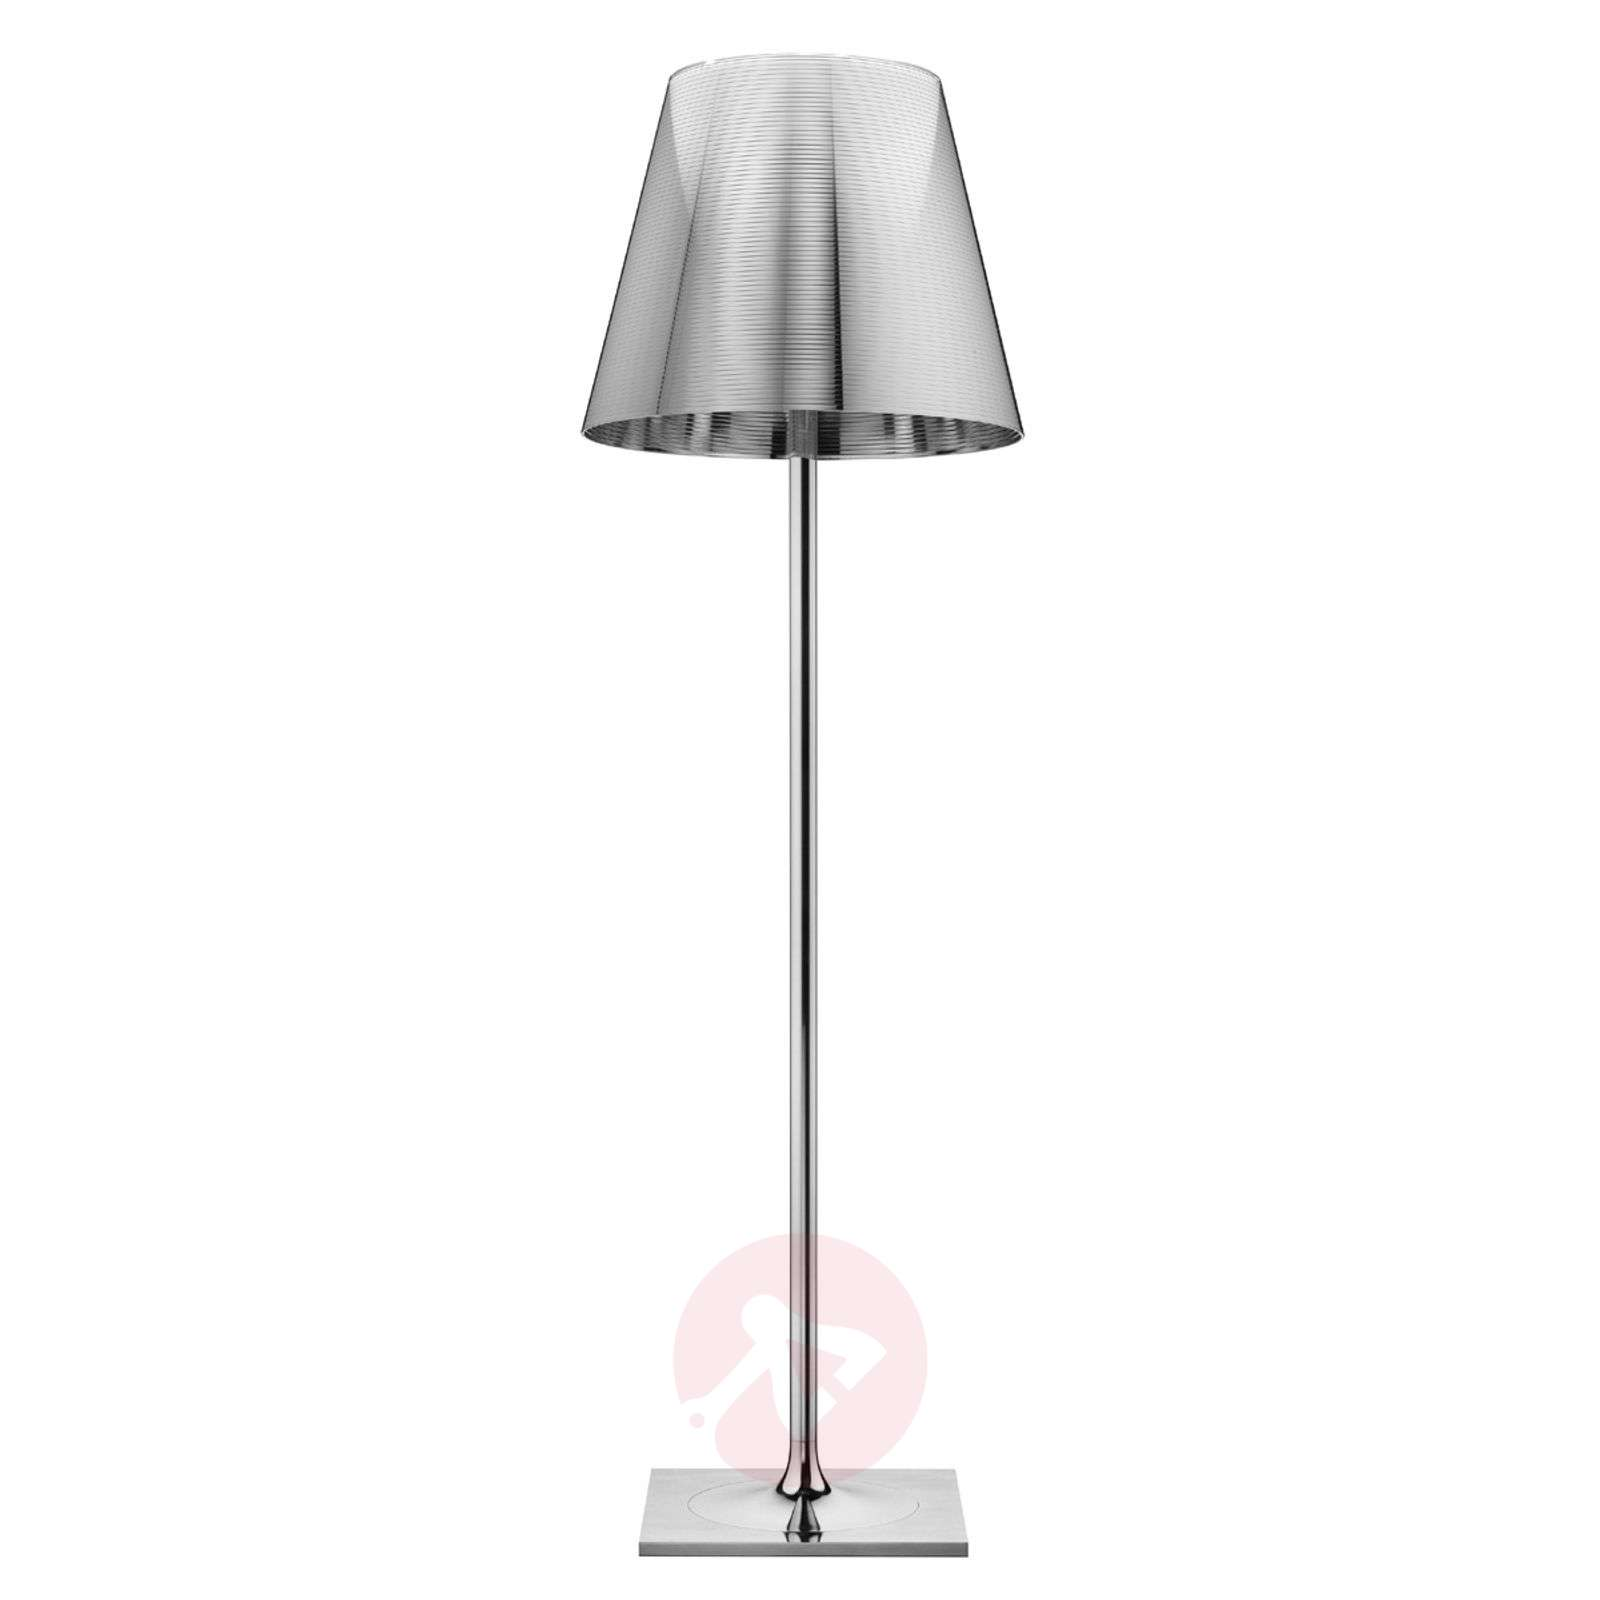 Ktribe f3 elegant floor lamp by flos lights ktribe f3 elegant floor lamp by flos 3510137x 01 aloadofball Choice Image